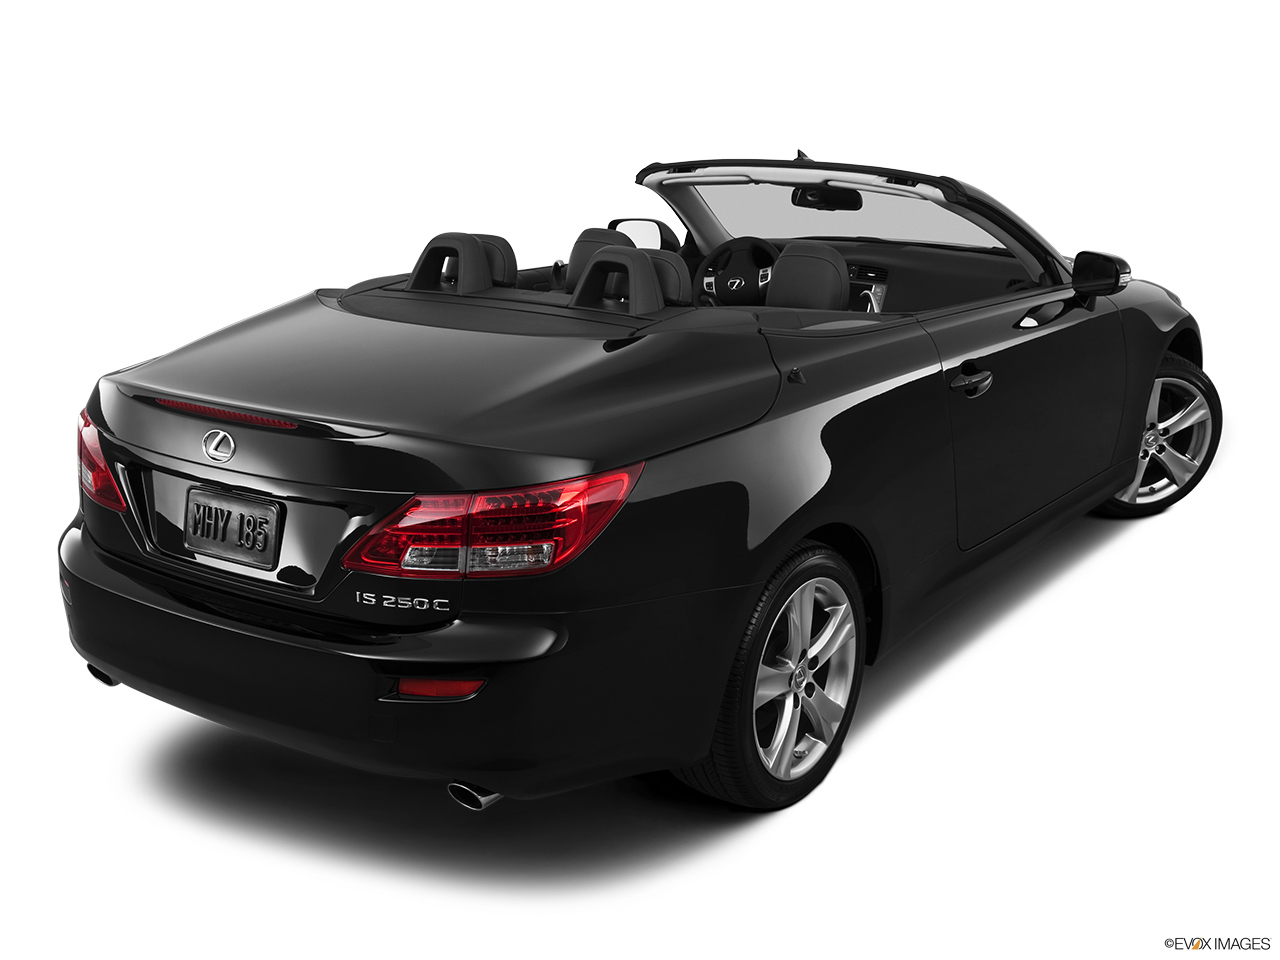 Nice 2015 Lexus IS 250C Convertible   Rear 3/4 Angle View